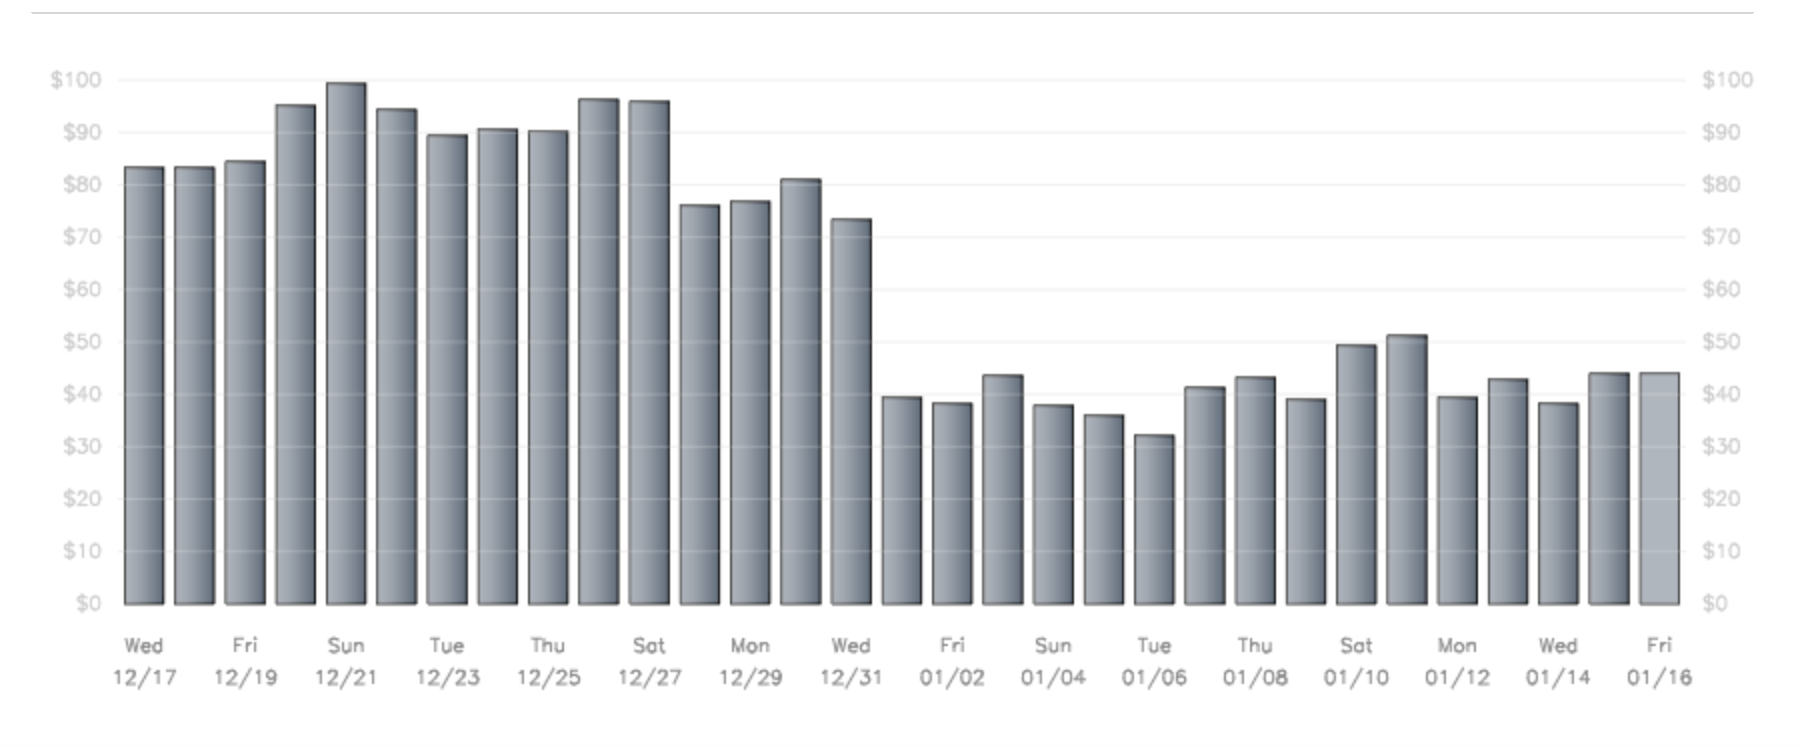 Learn why your iAd and AdMob ECPM tanked in January